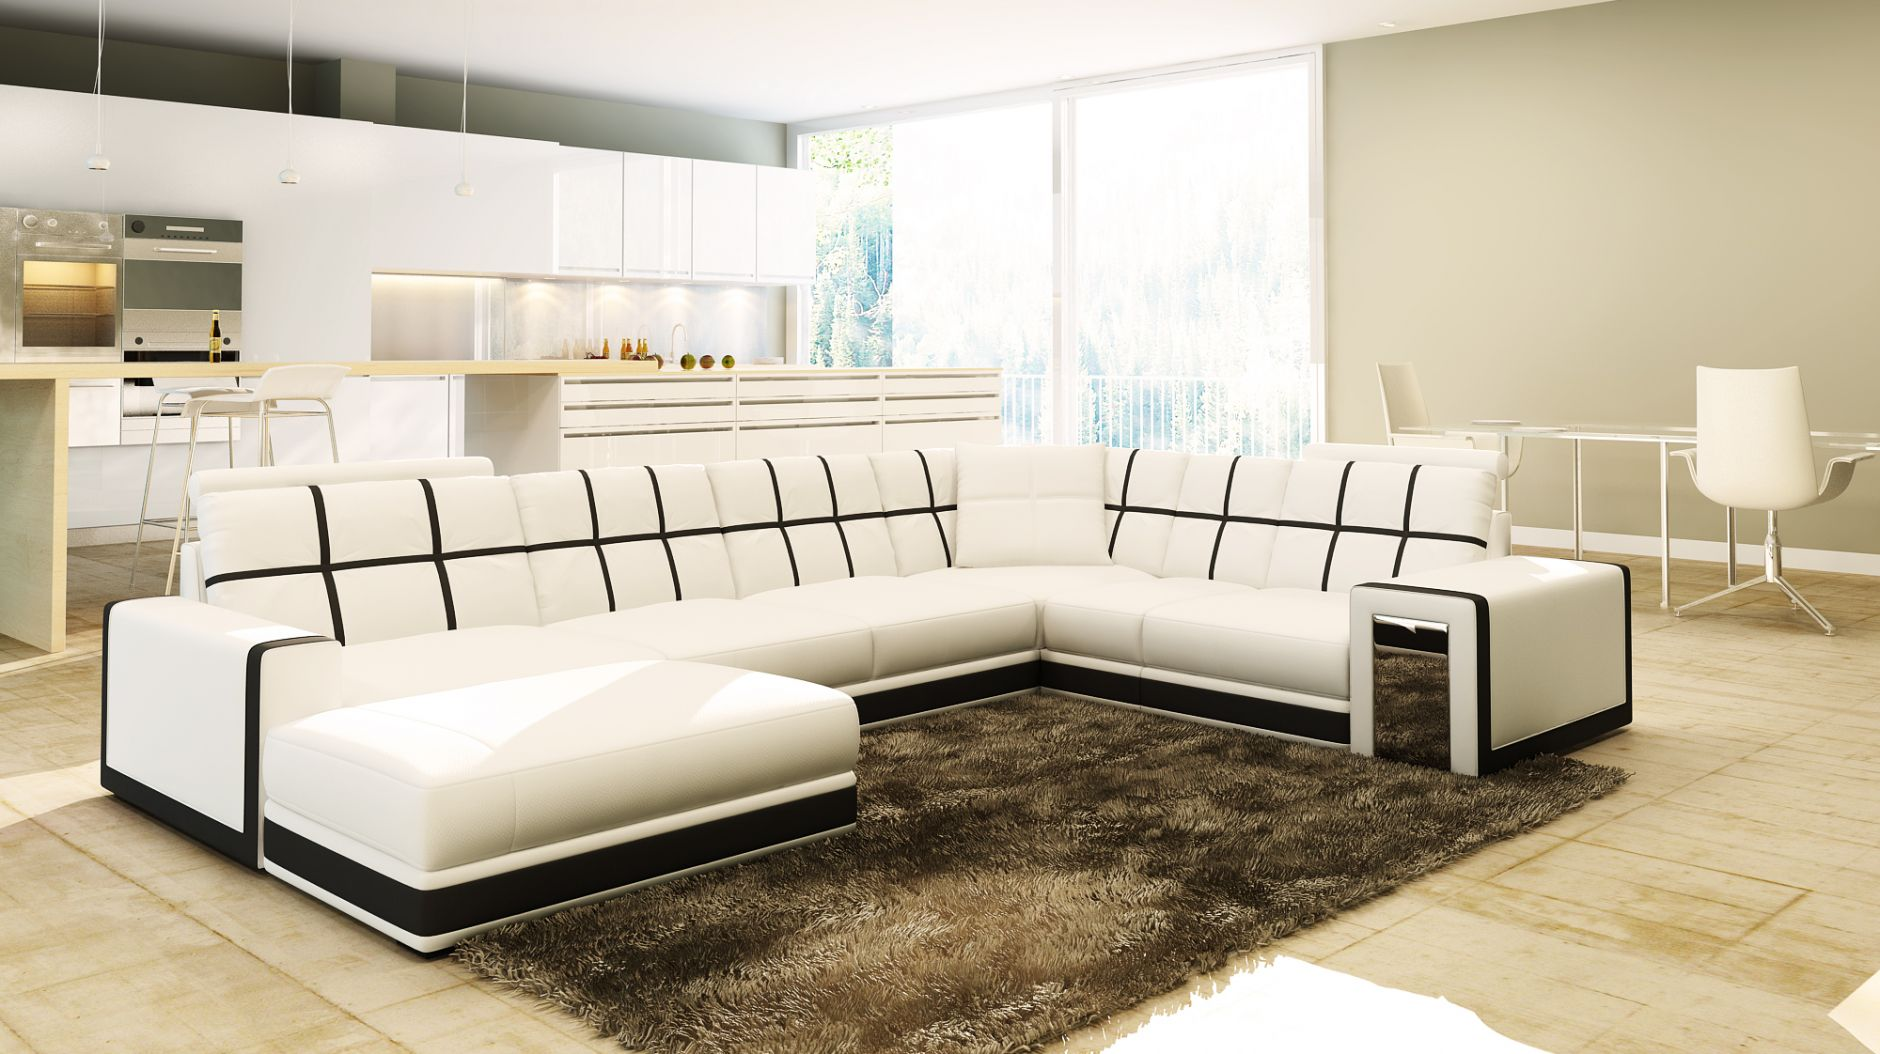 schnittsofa schnittsofa modell 5078die m bel aus italien. Black Bedroom Furniture Sets. Home Design Ideas